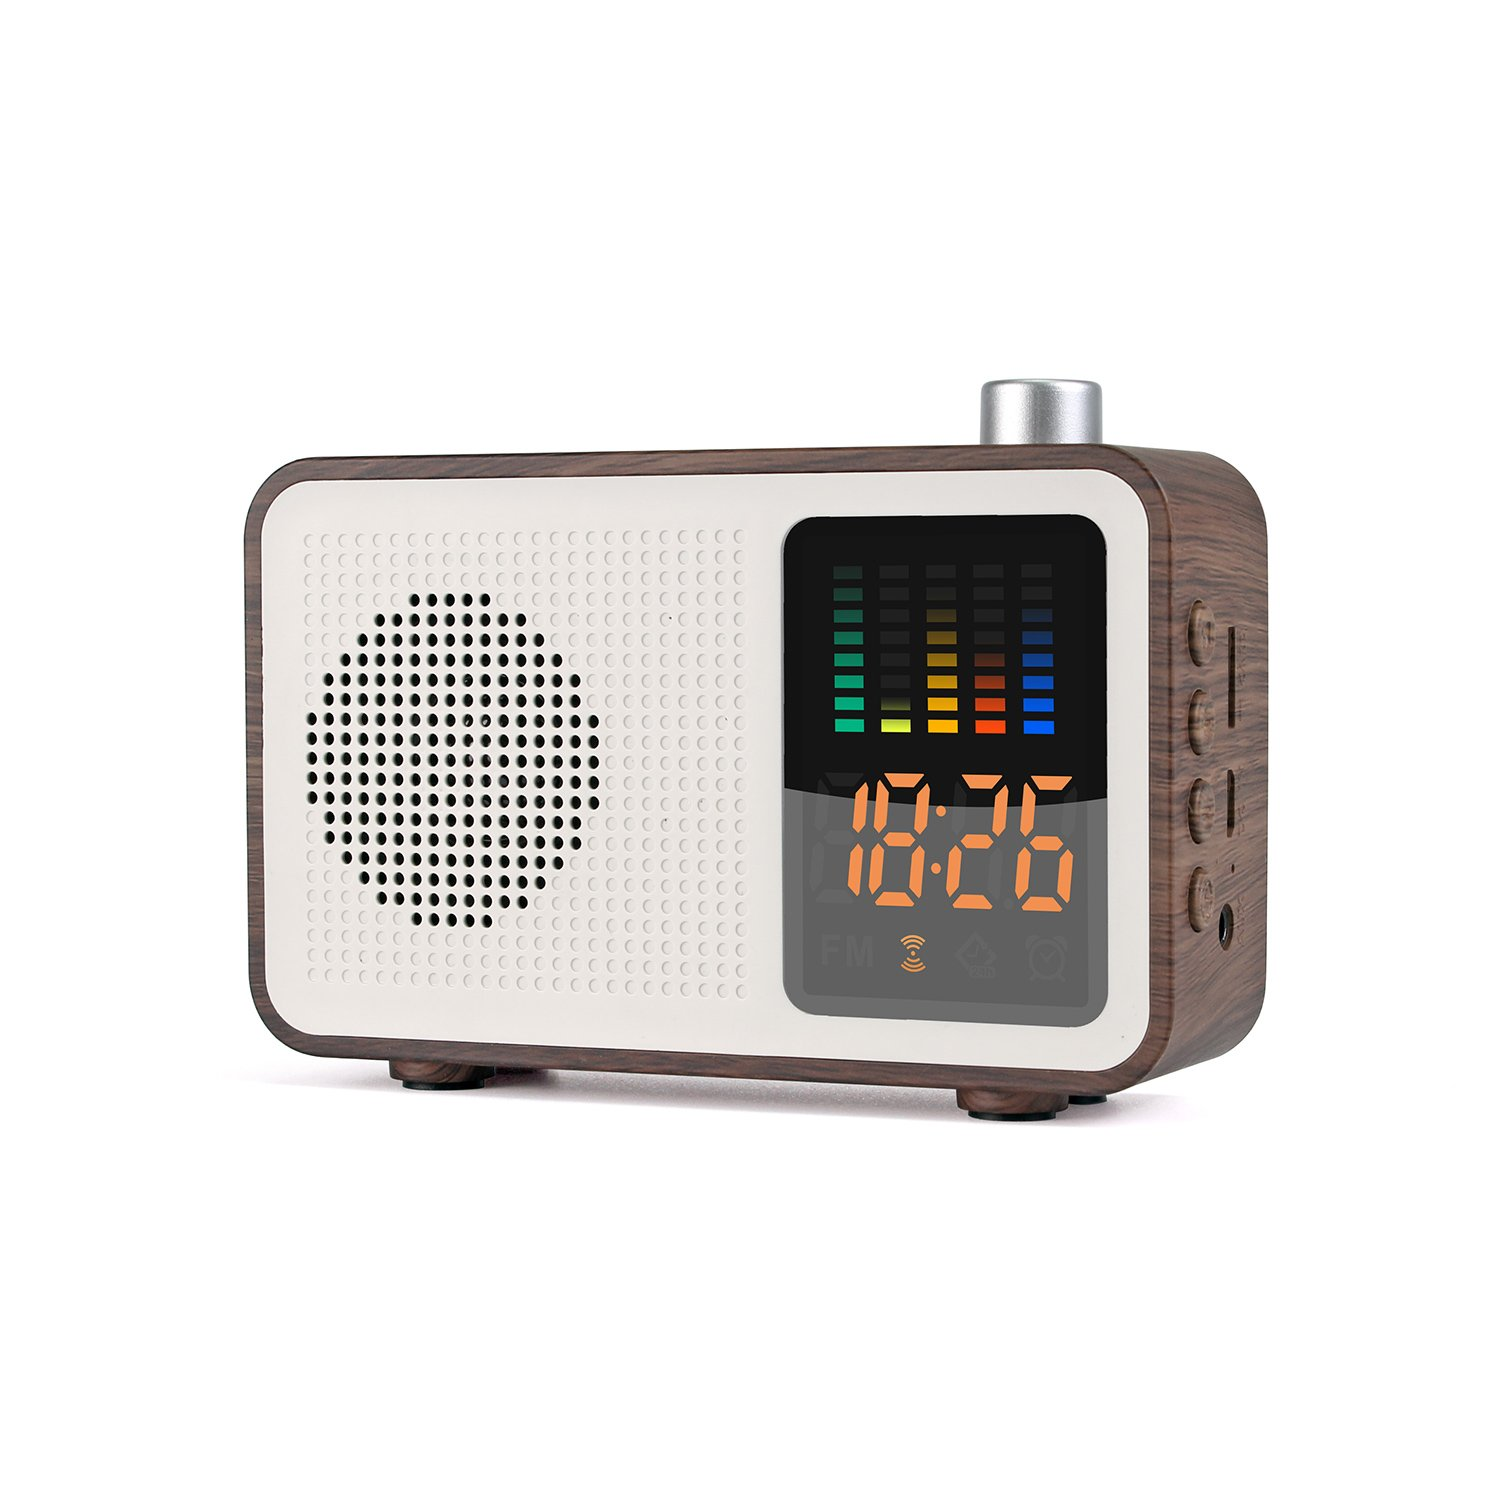 YSEECHENS Retro Portable Bluetooth Speaker FM Radio Alarm Clock Stereo Wireless Speakers Support TF Card/AUX-in M20